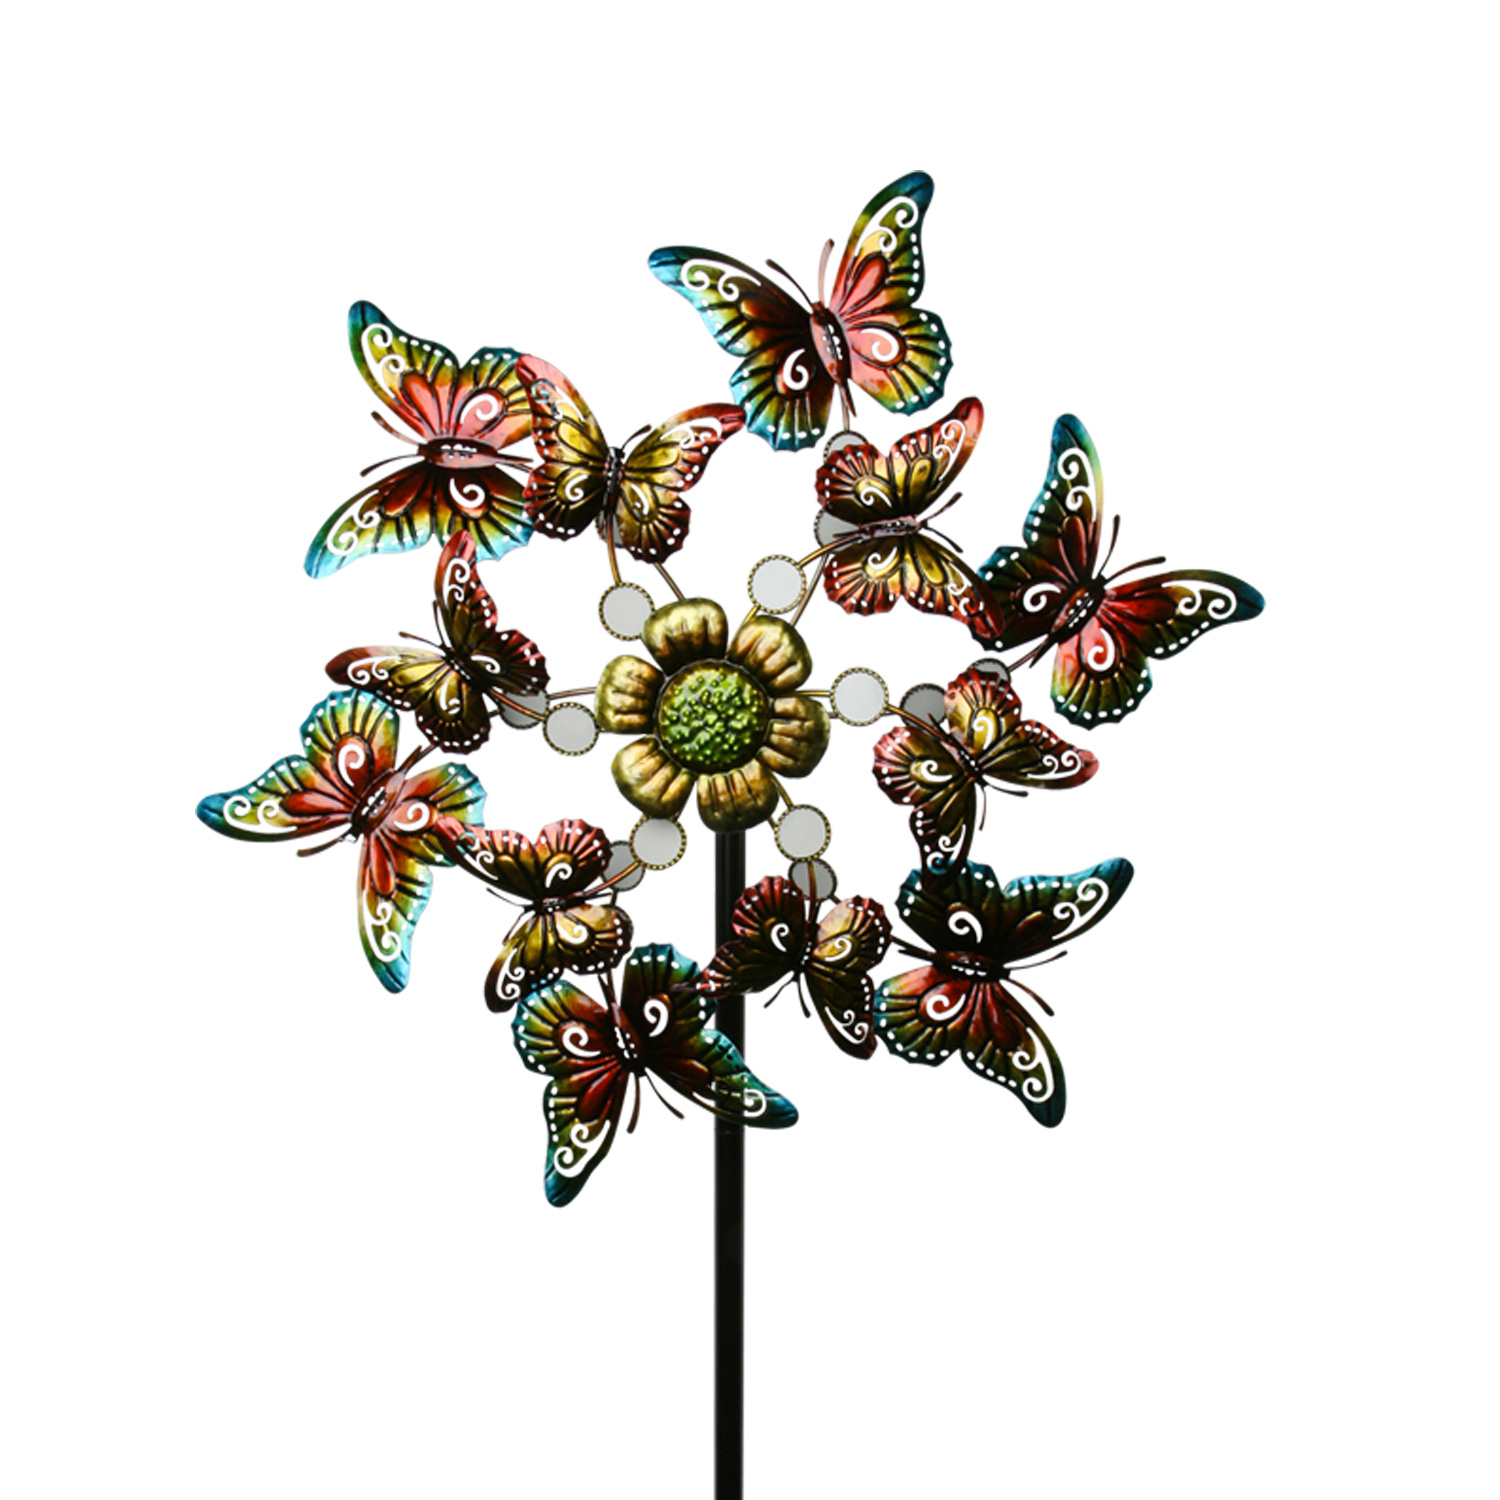 Windrad Schmetterling Ø 62 cm Windrad Gartendeko Blume Windspiel Gartenstecker